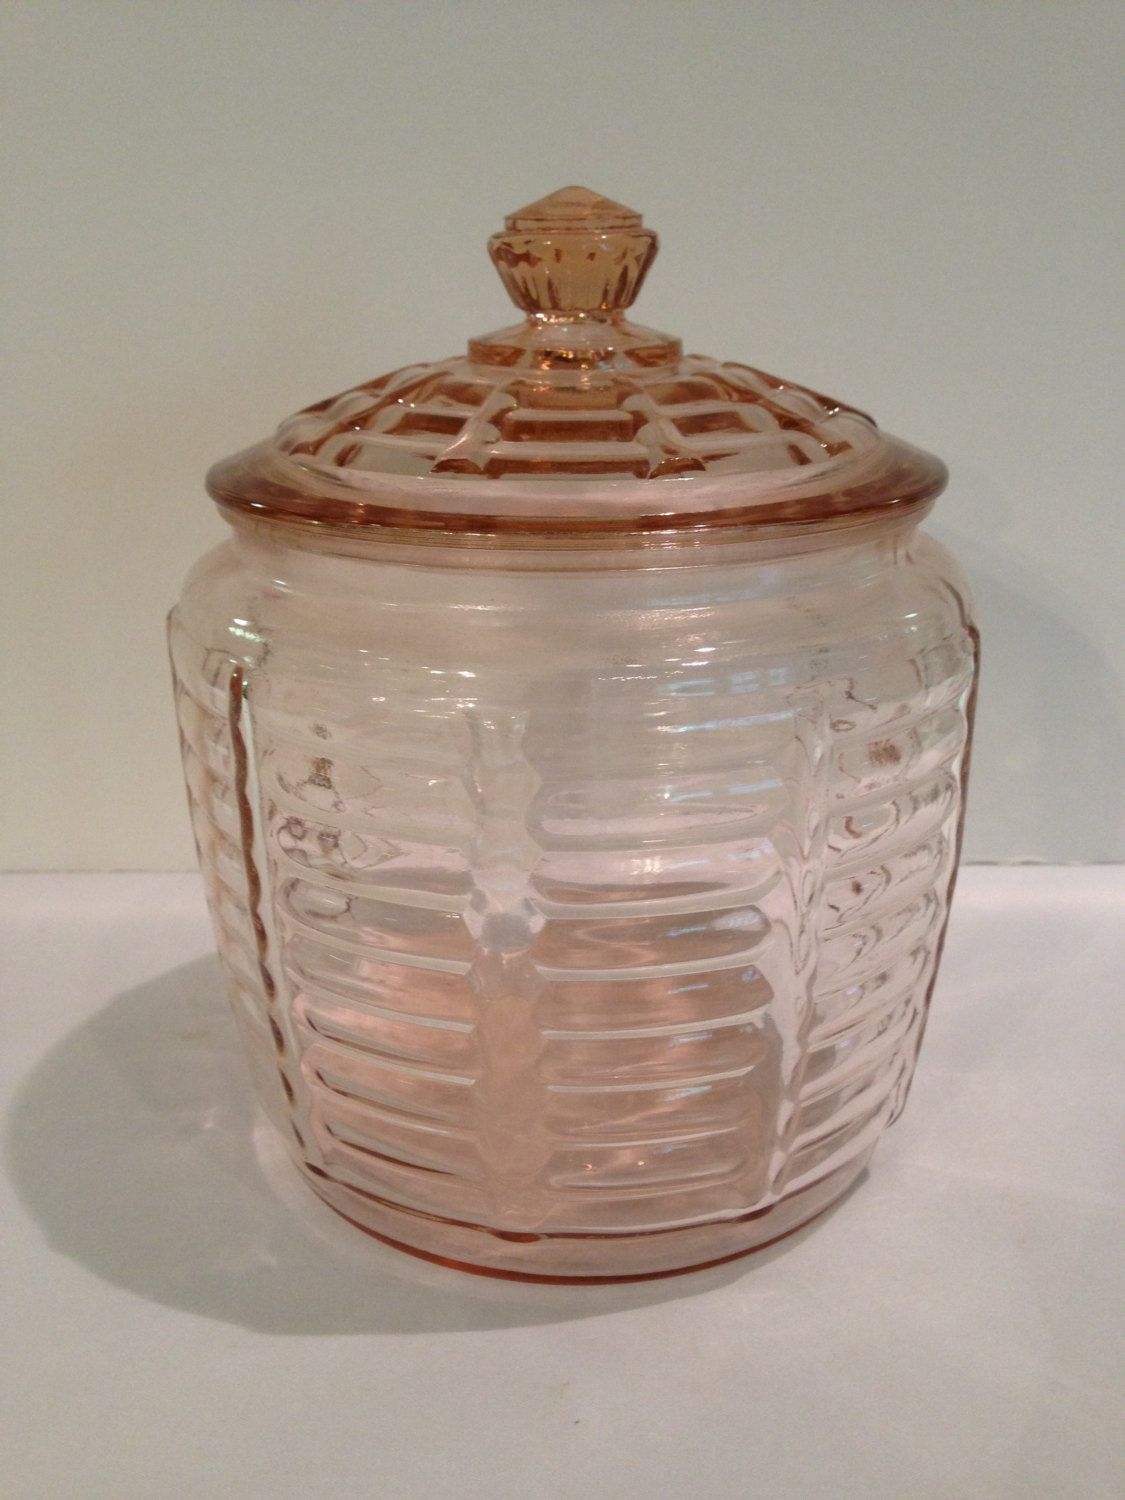 Anchor Hocking Pink Depression Glass Biscuit/Cookie Jar, Vintage, 1940s,  Paneled U0026